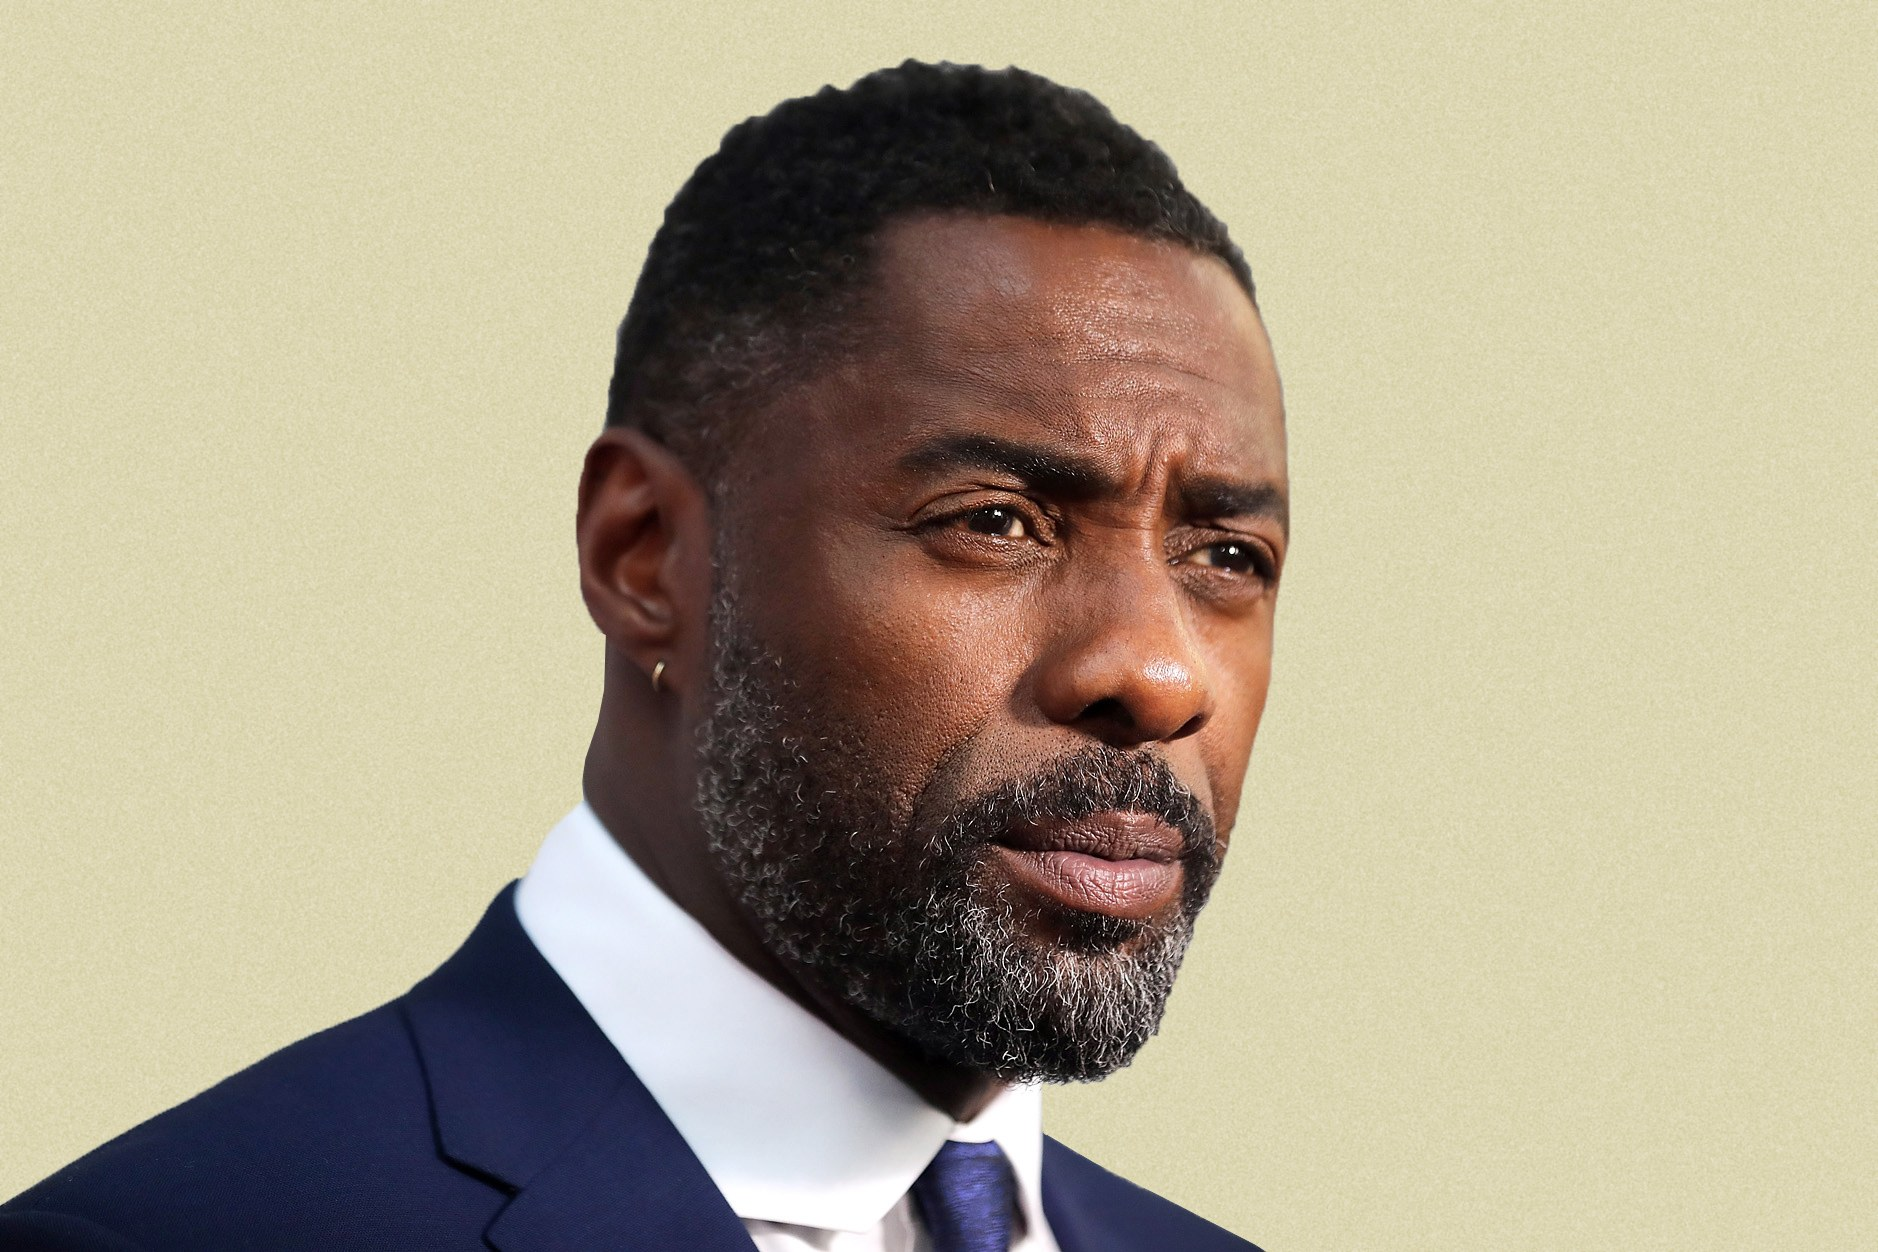 bearded celebrities idris elba